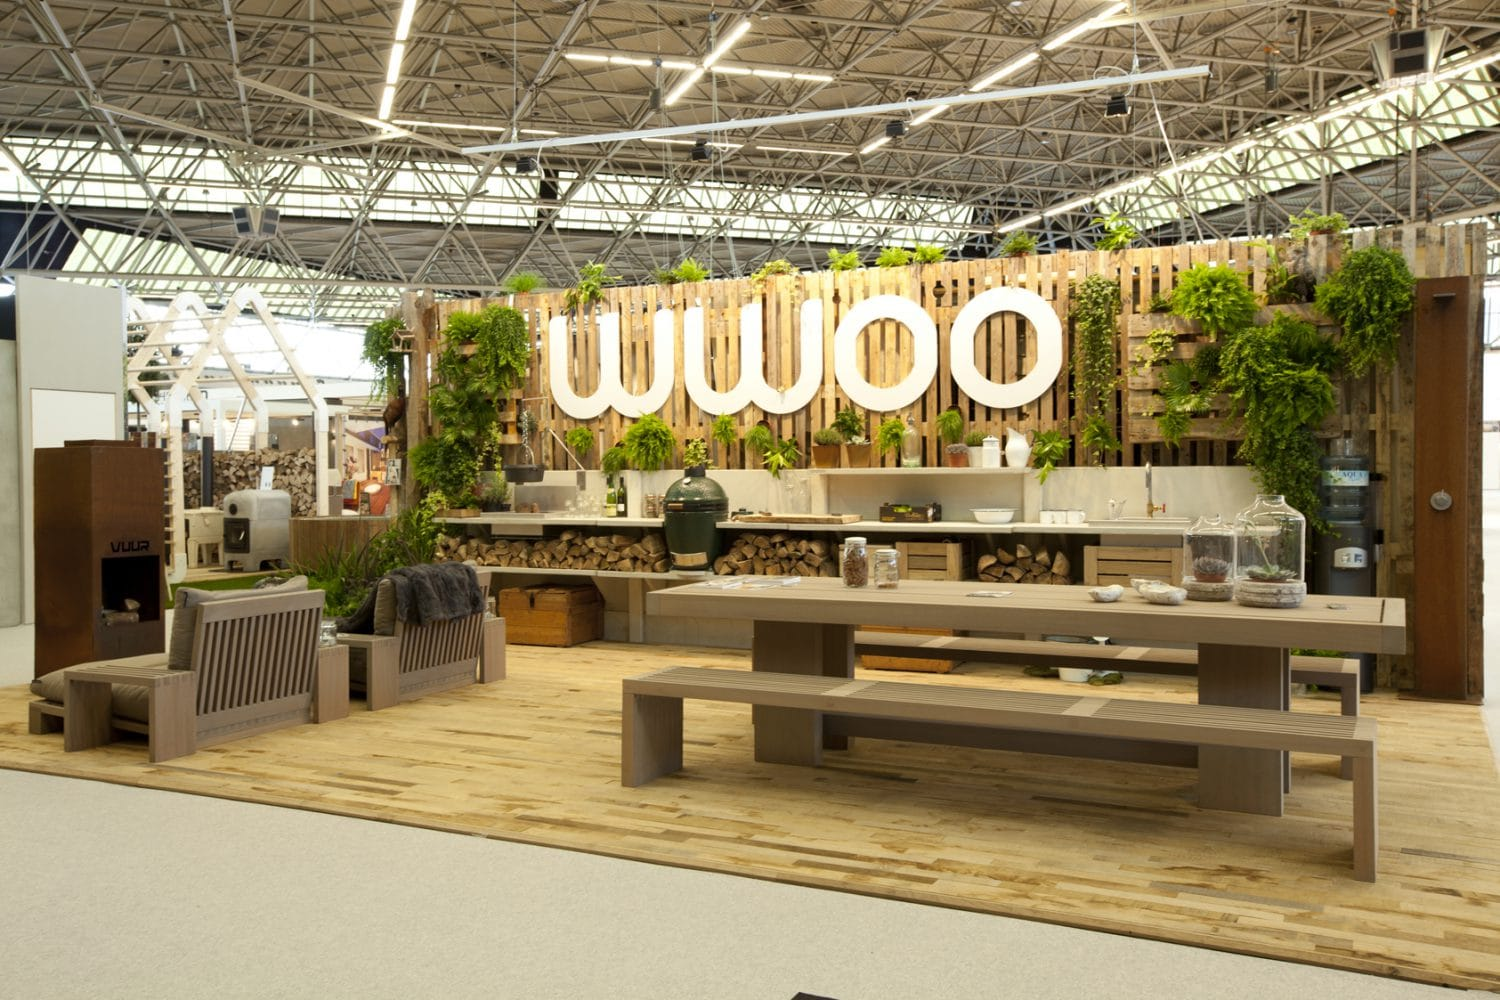 Wwoo outdoor kitchen buitenkeukens